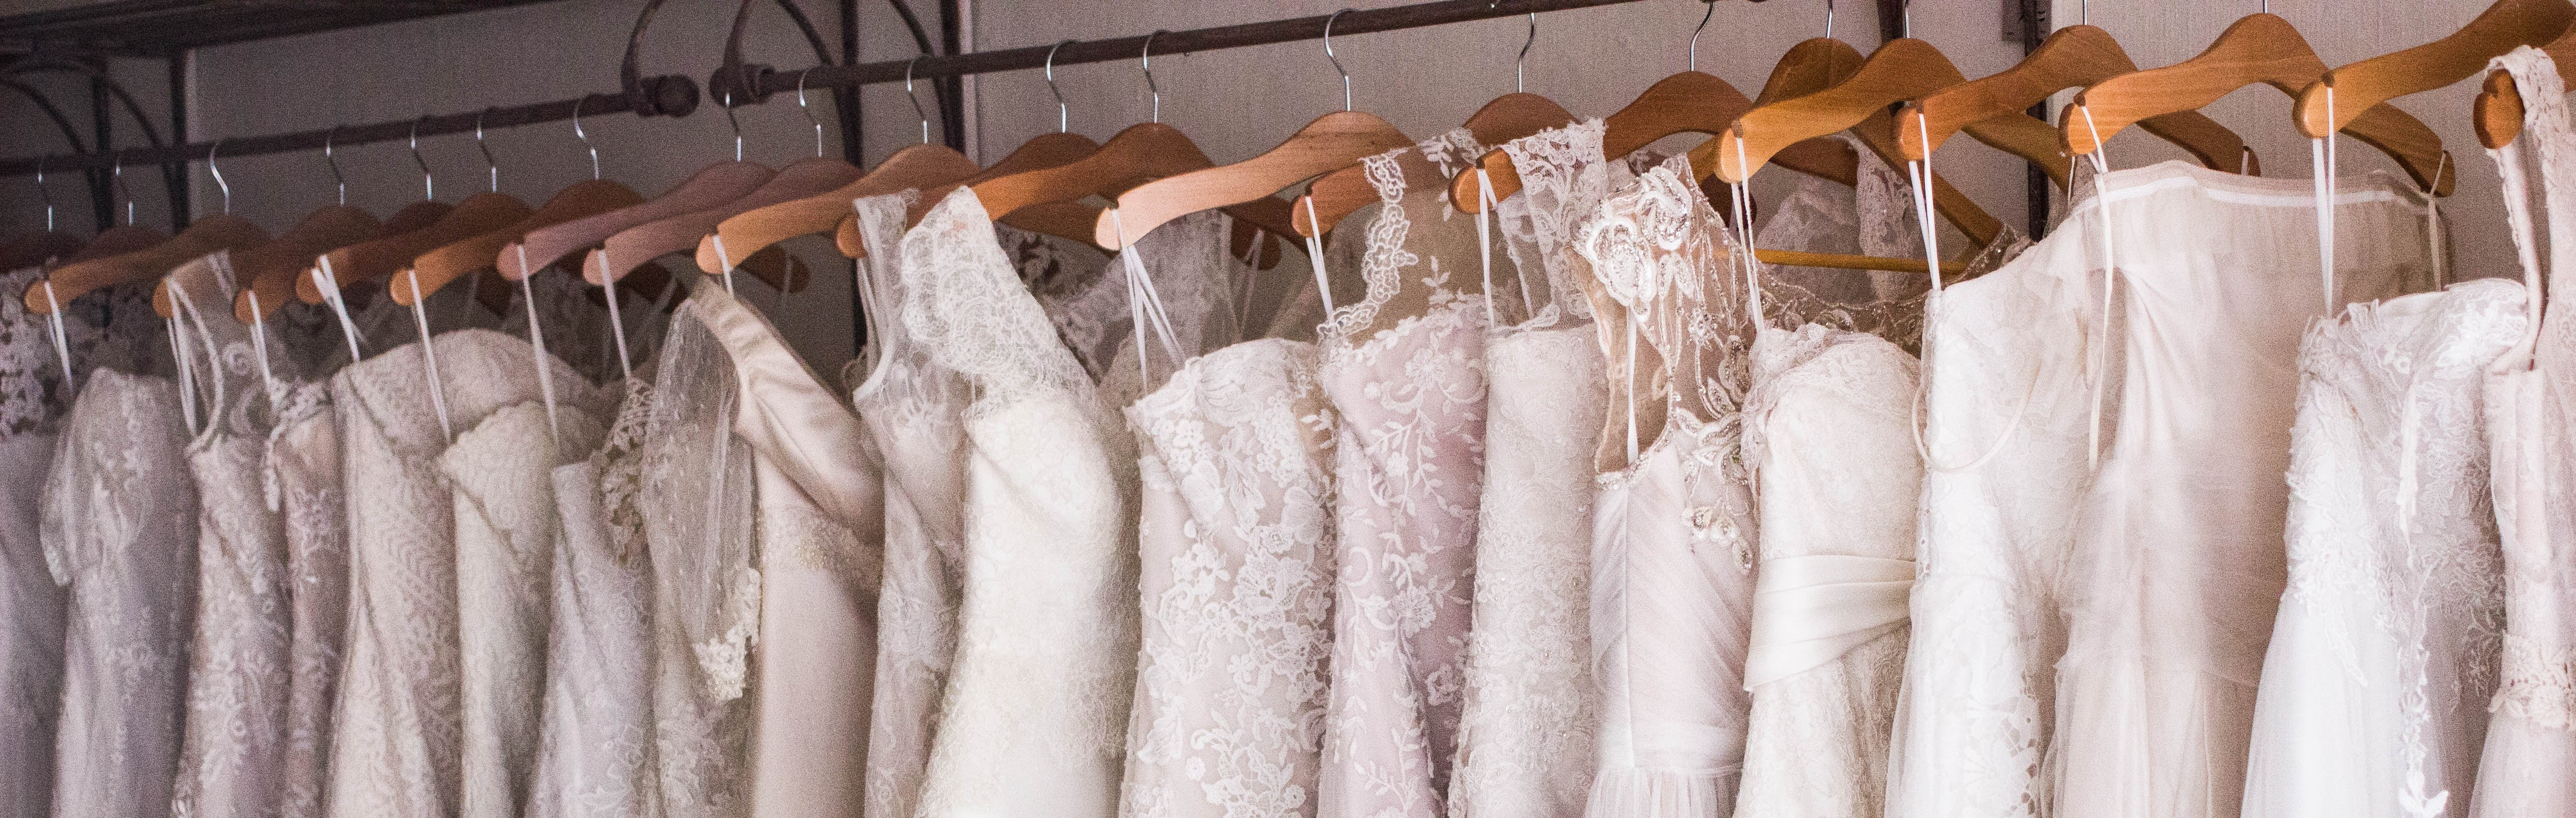 wedding gowns hung up